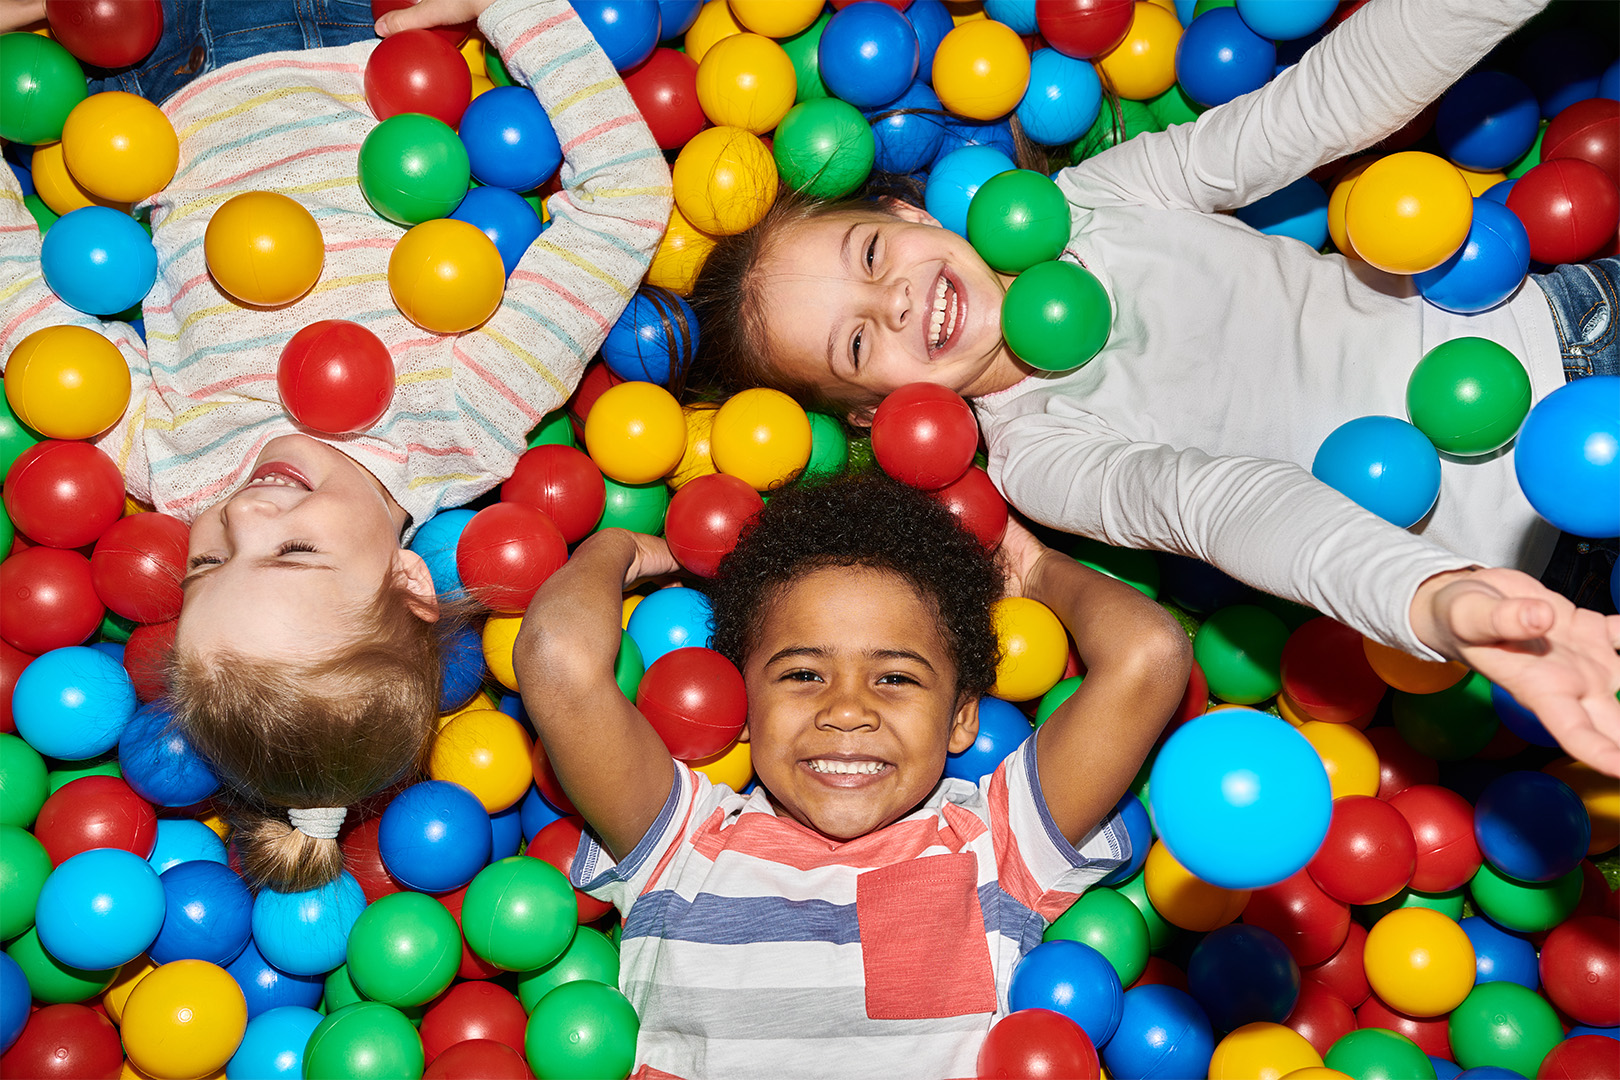 Play Way - For children aged 5 – 10 we have play way, where they can have endless fun, playing in the ball pit, climbing around or whizzing down one of our fun slides – Giving the little ones the opportunity to navigate their way through our zone focused on play.